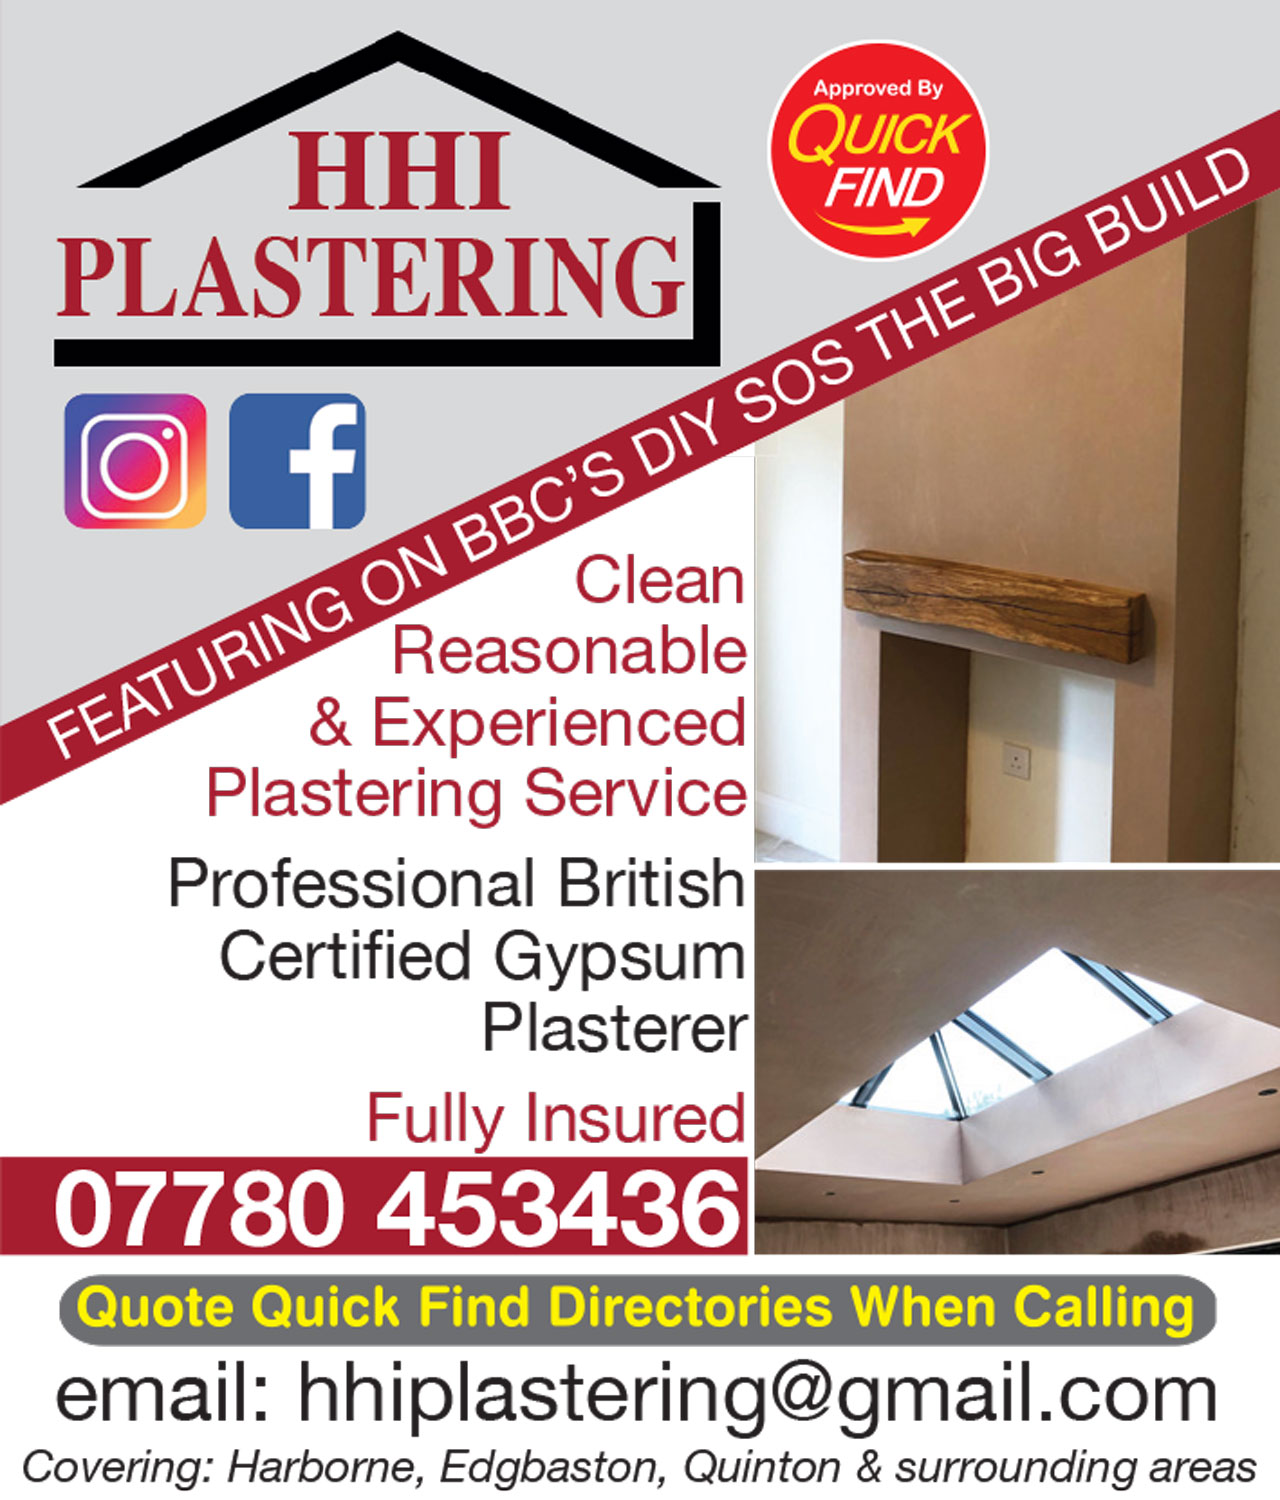 HHI Plastering